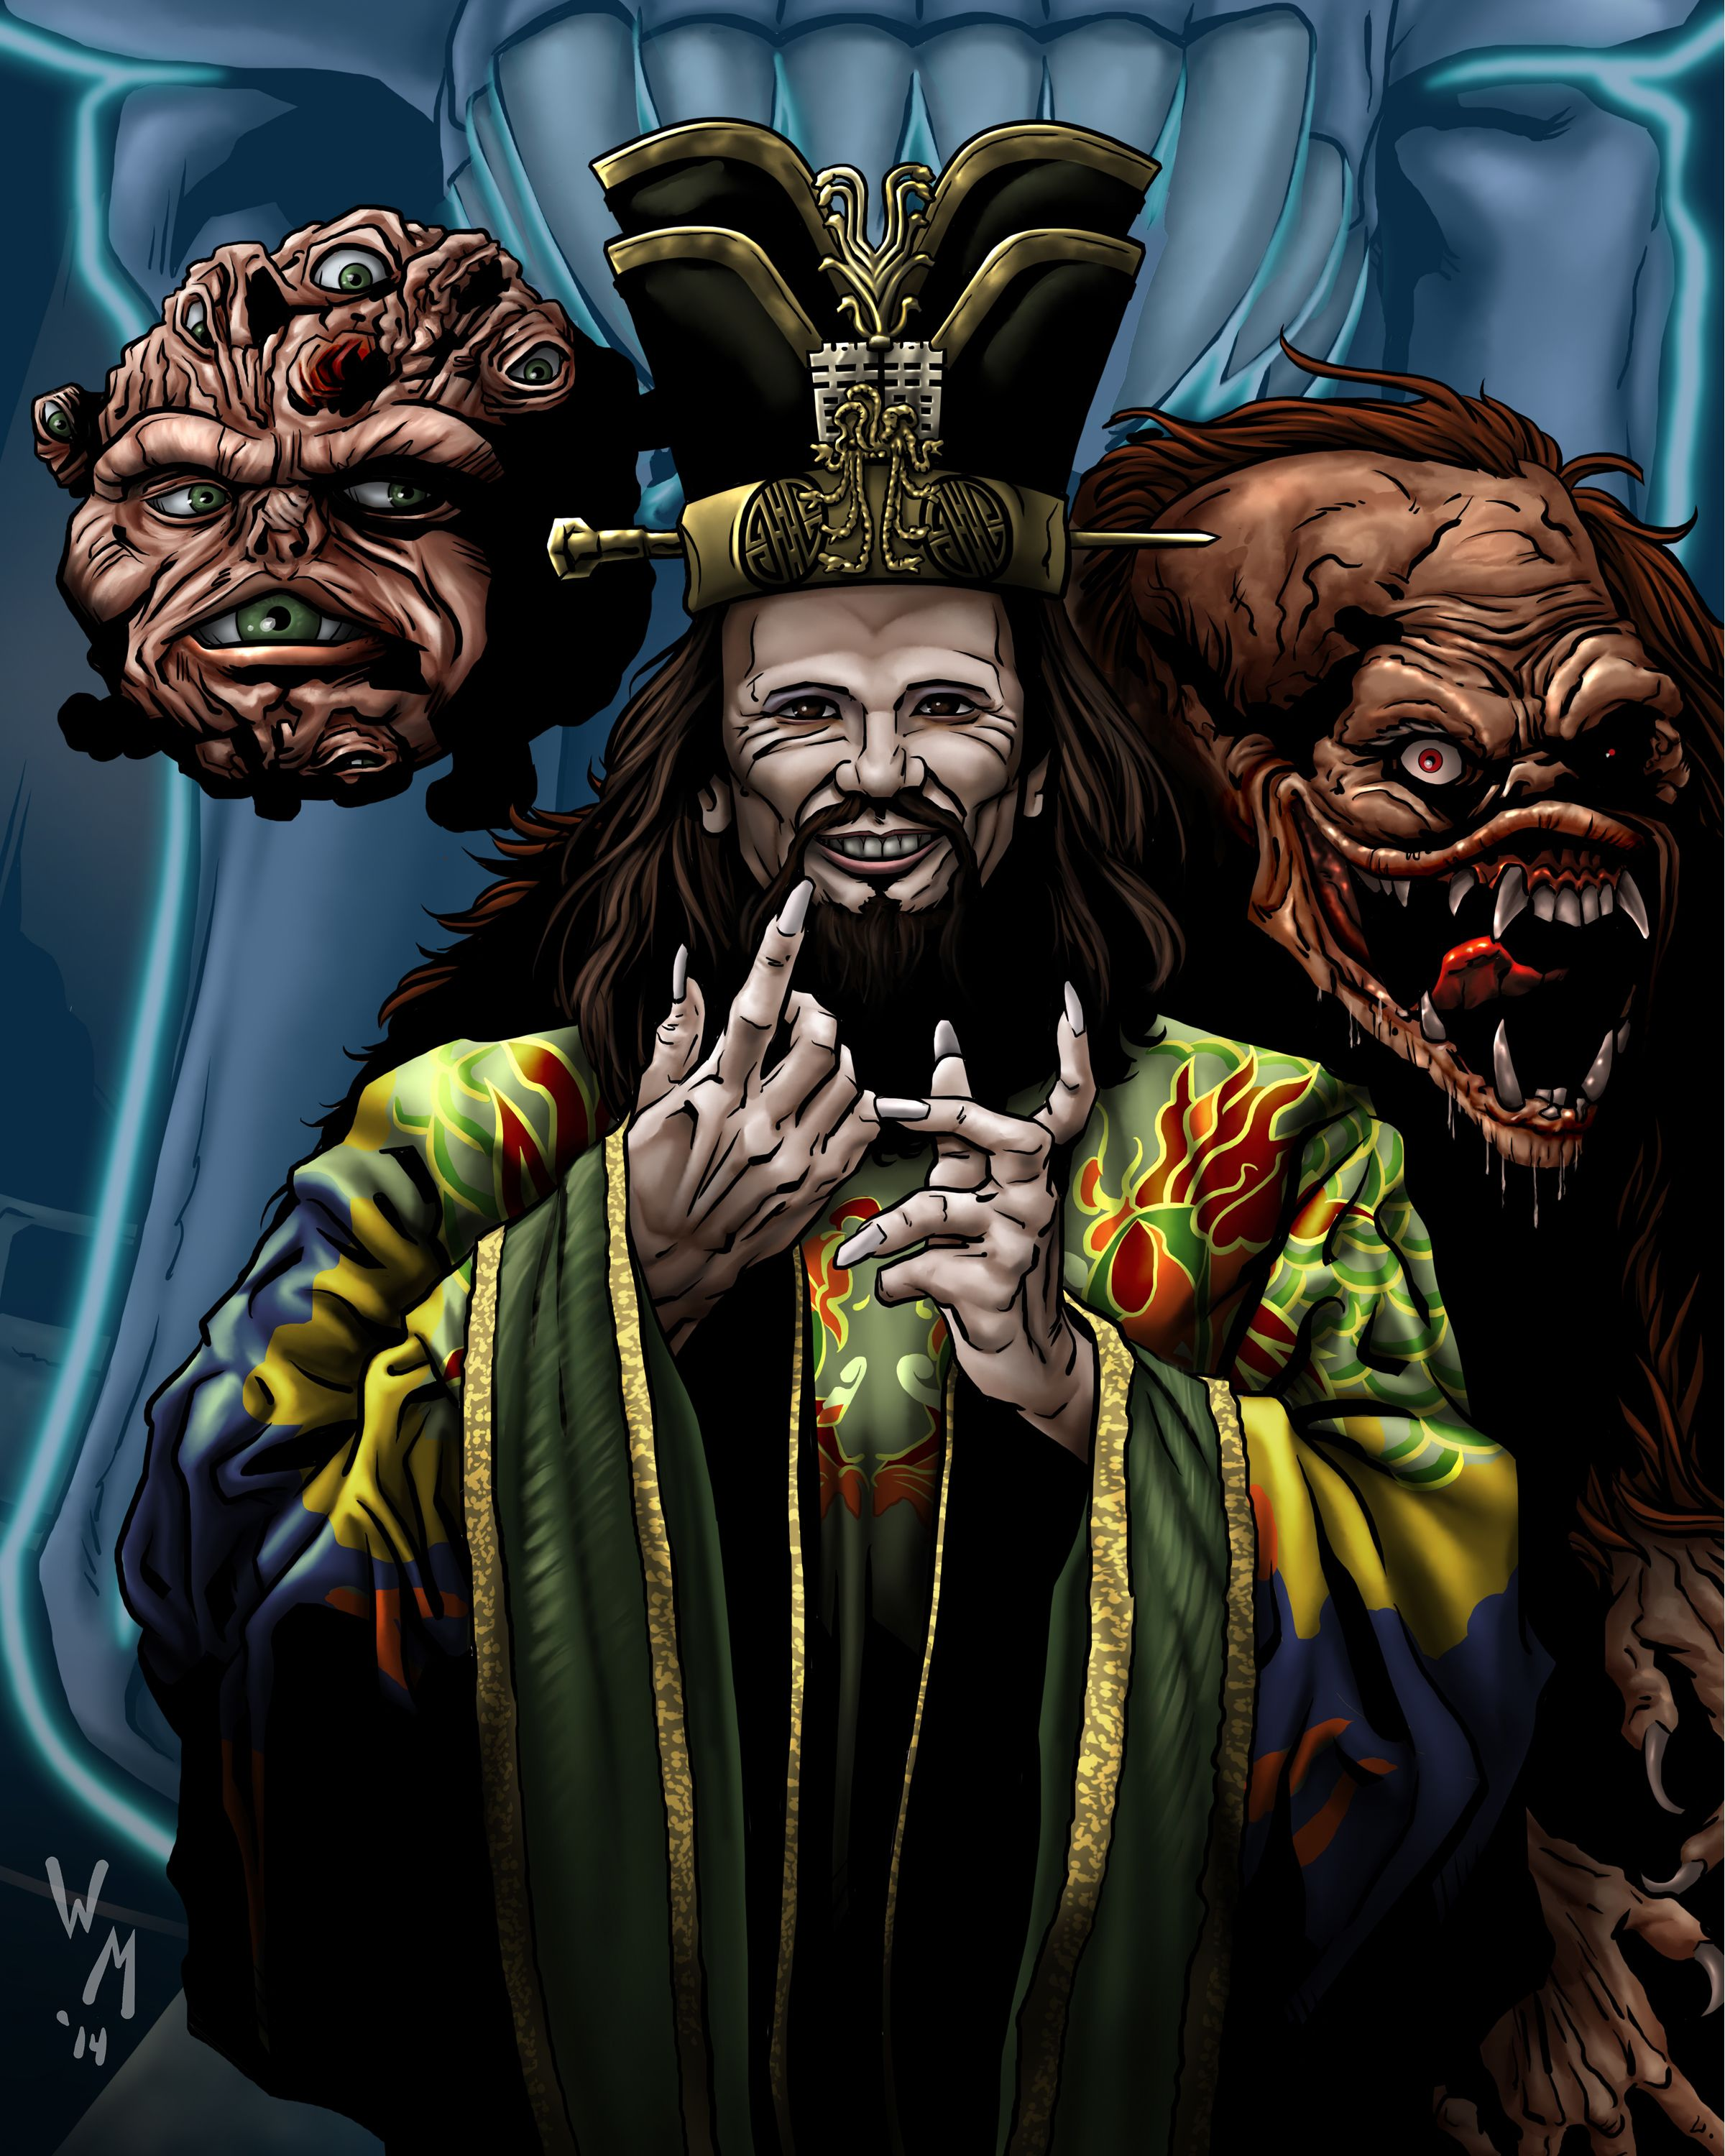 David Lo Pan James Hong From Big Trouble In Little China Drawn